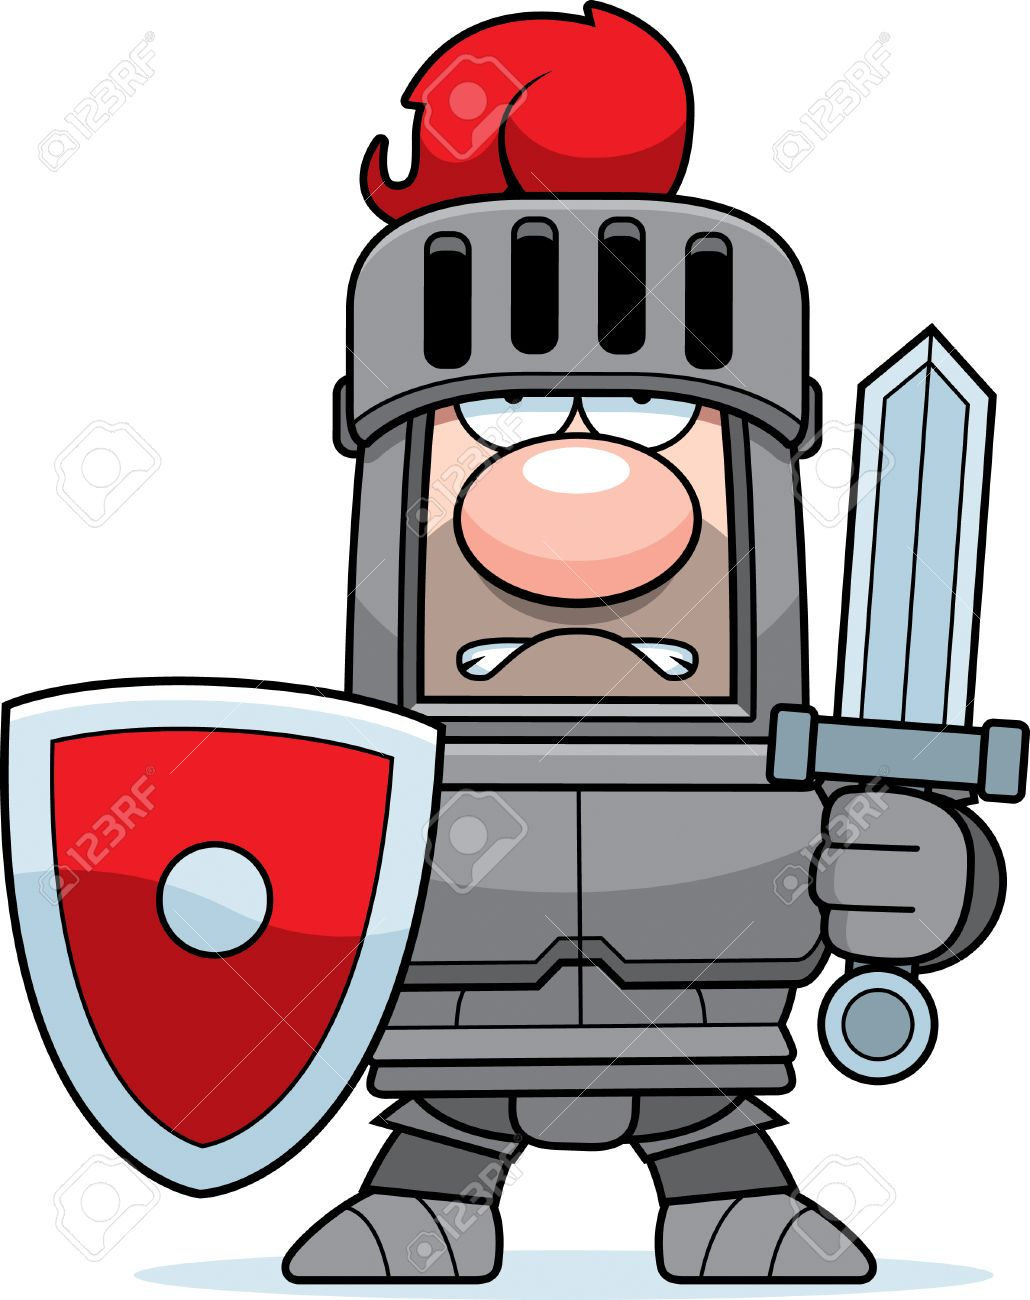 1030x1300 A Cartoon Knight In Armor With Sword And Shield. Royalty Free